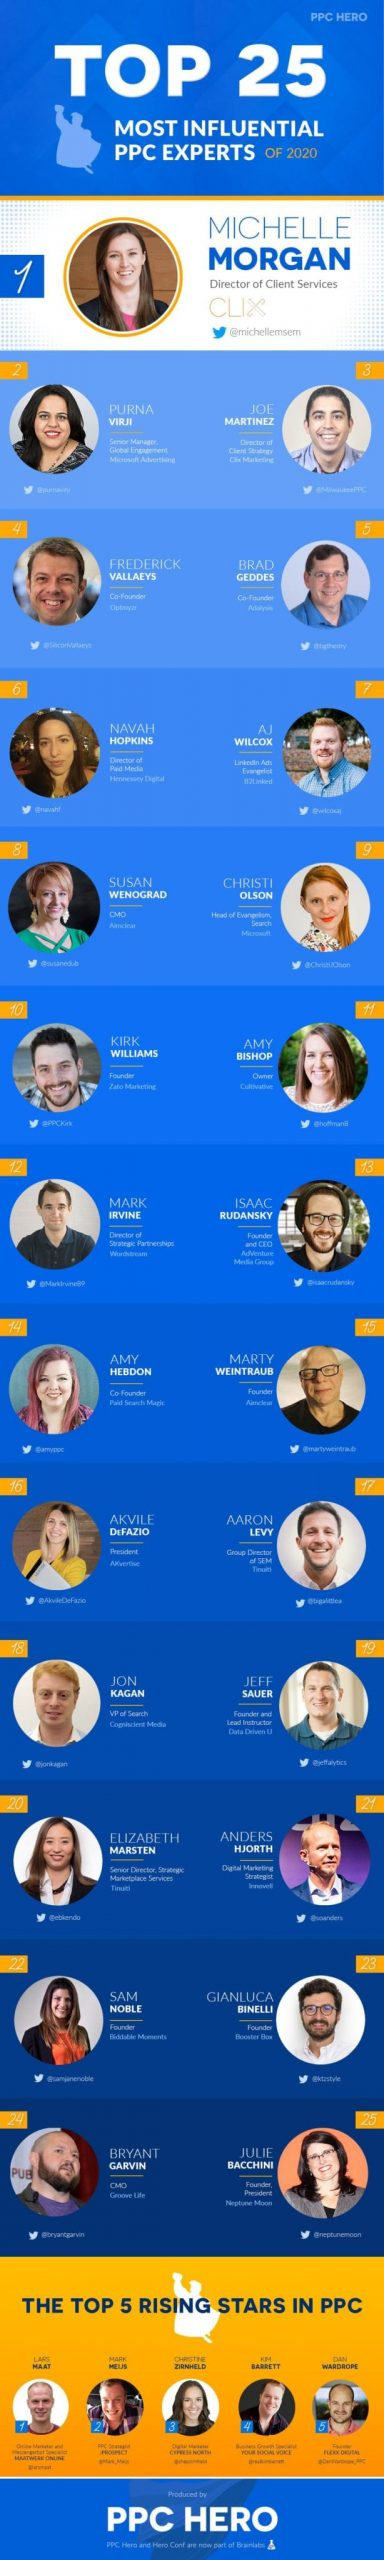 The Top 25 Most Influential PPC Experts of 2020